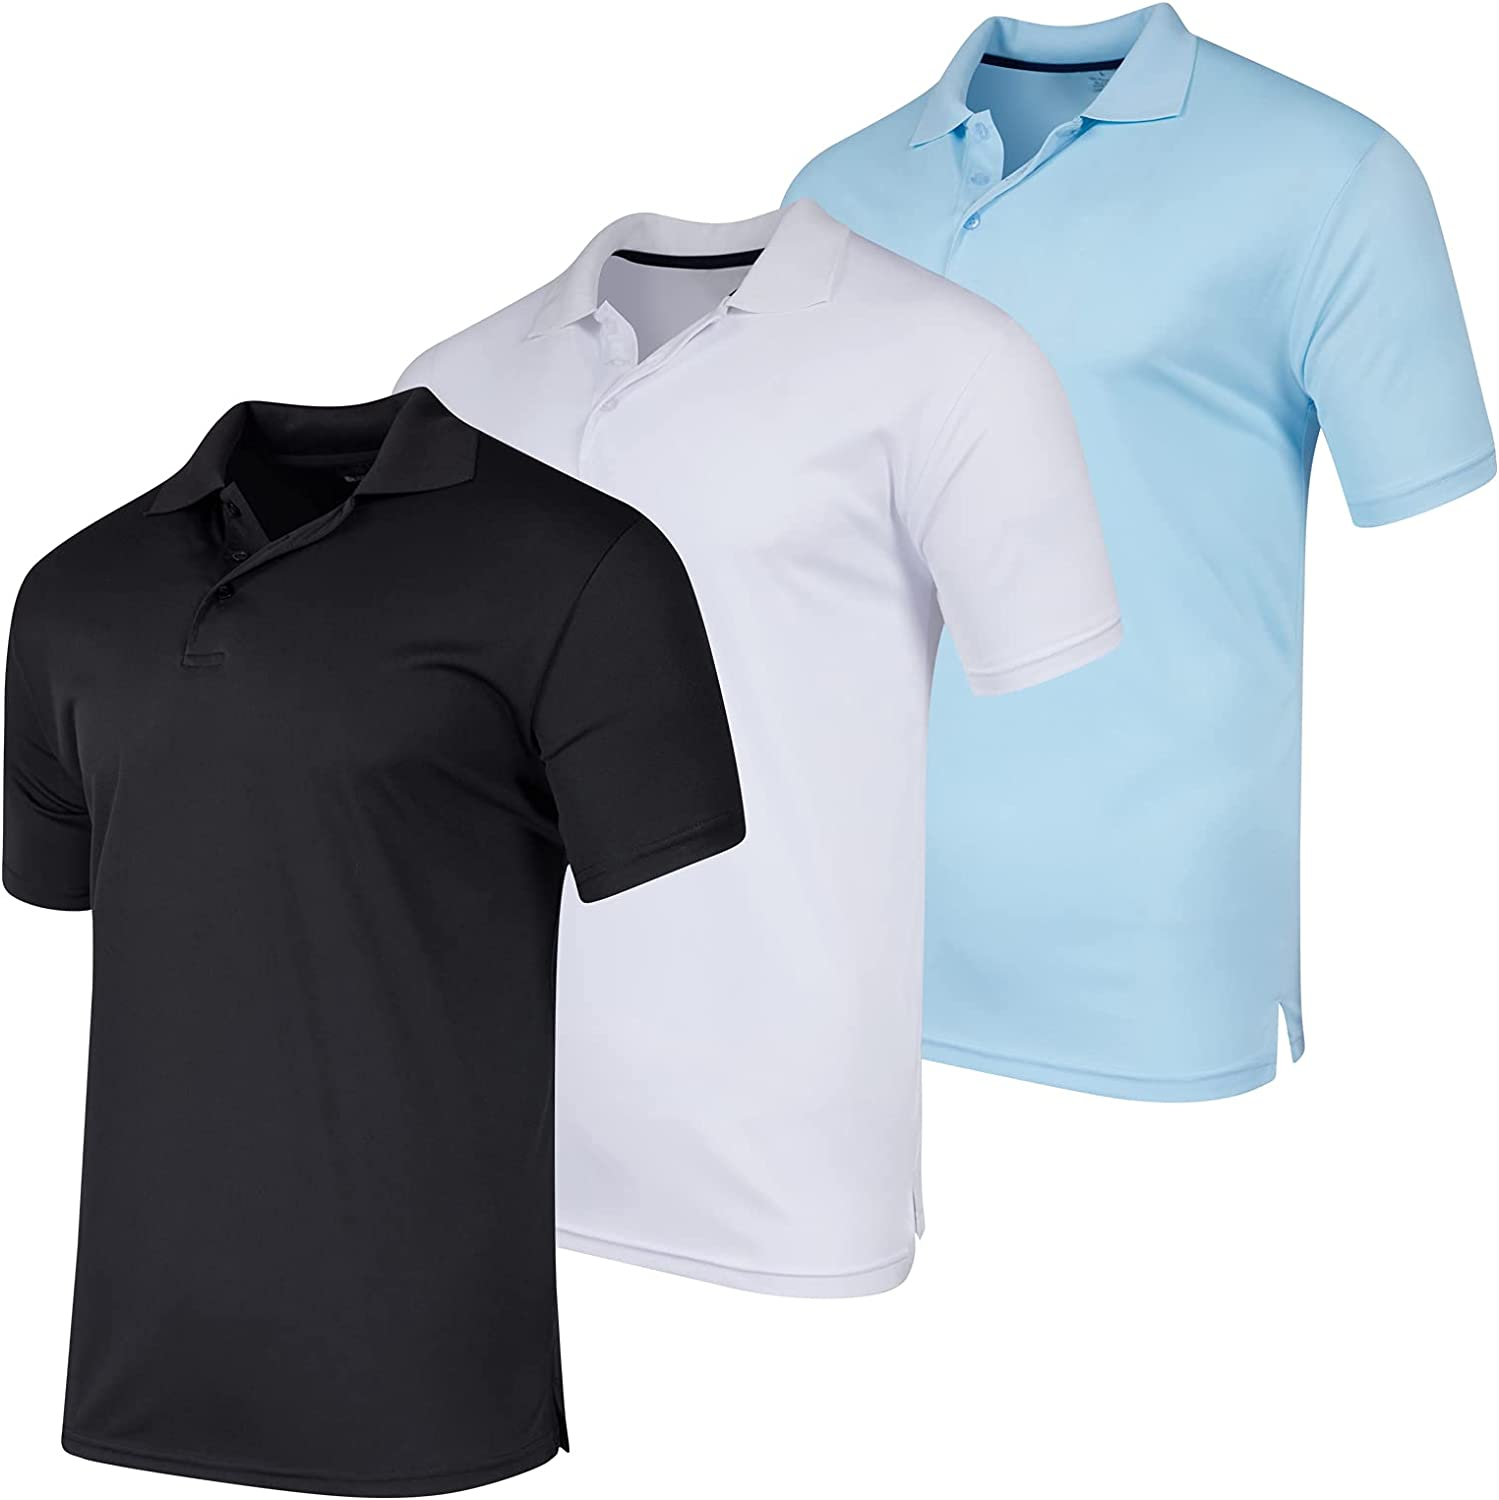 3 Pack: Men's Quick-Dry Short Polo Athletic S shop Indefinitely Performance Sleeve